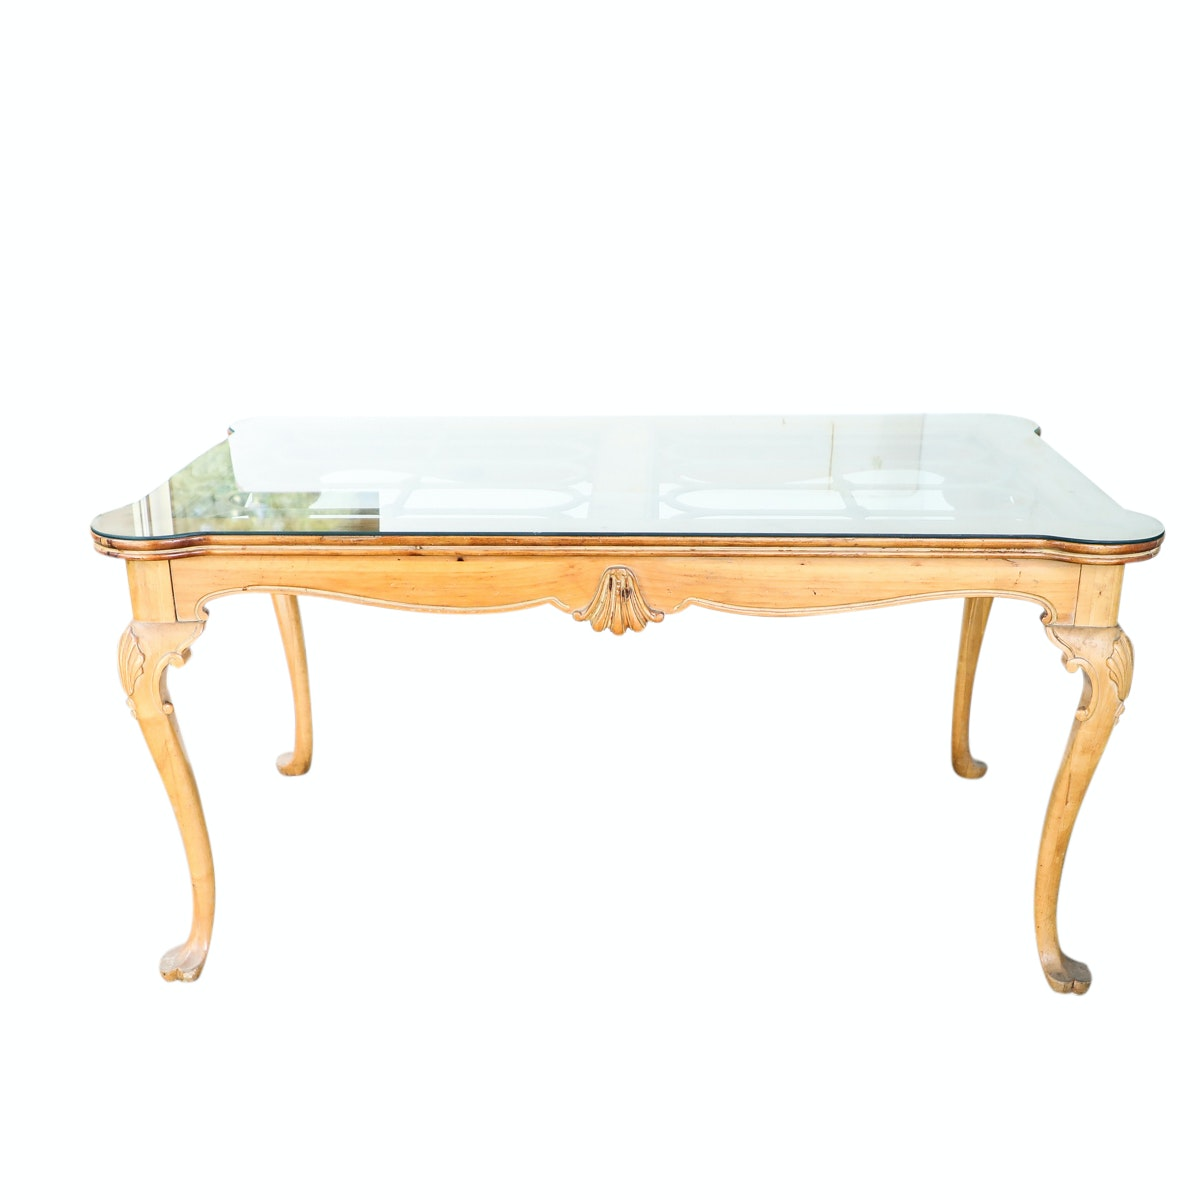 French Style Pierced Top Dining Table with Glass